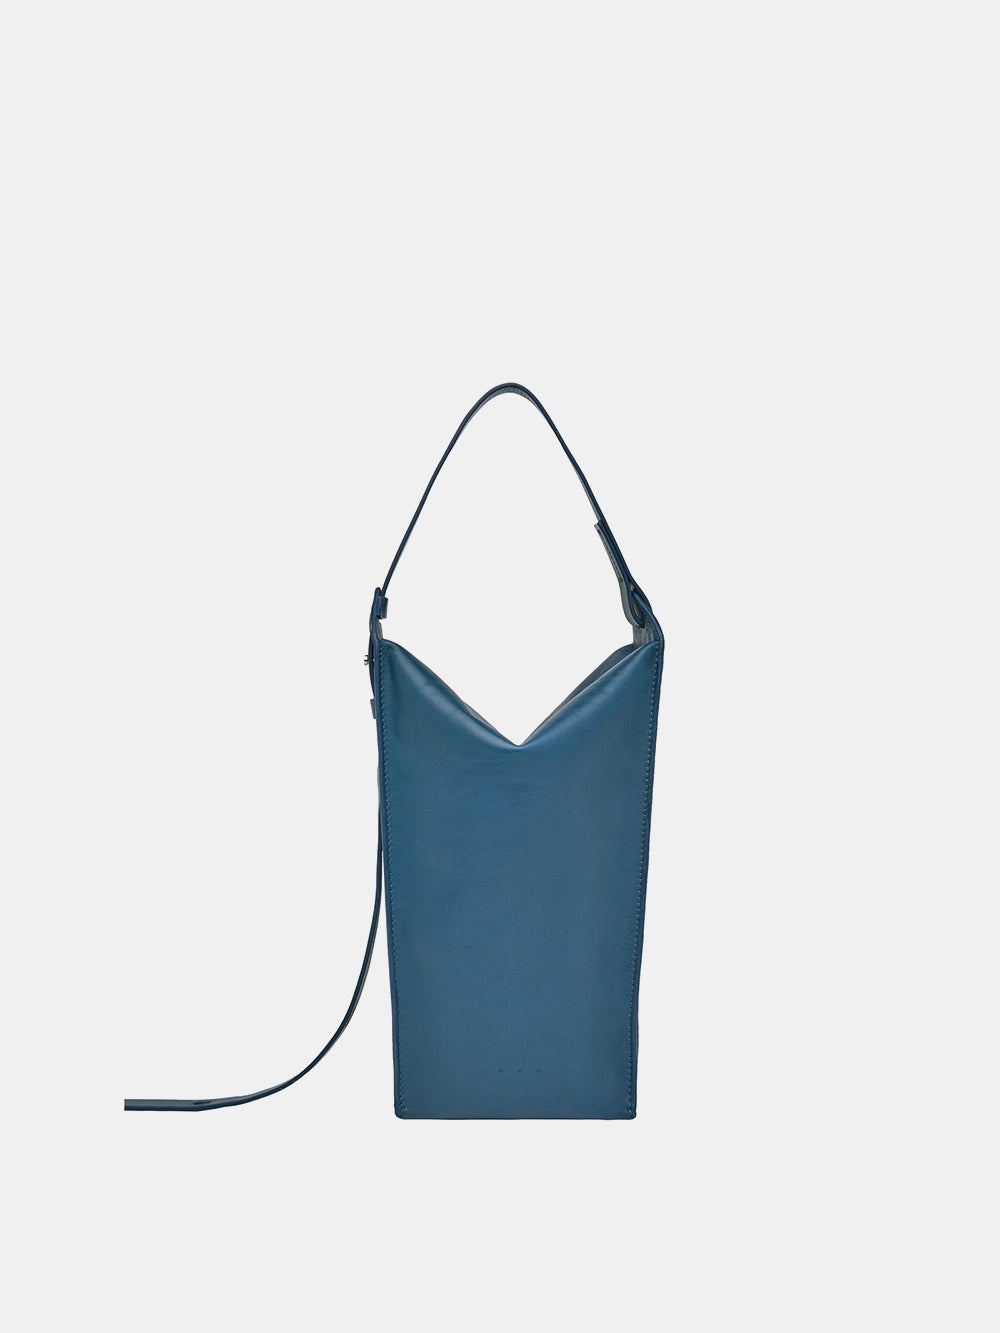 aesther ekme vanity bag in cobalt